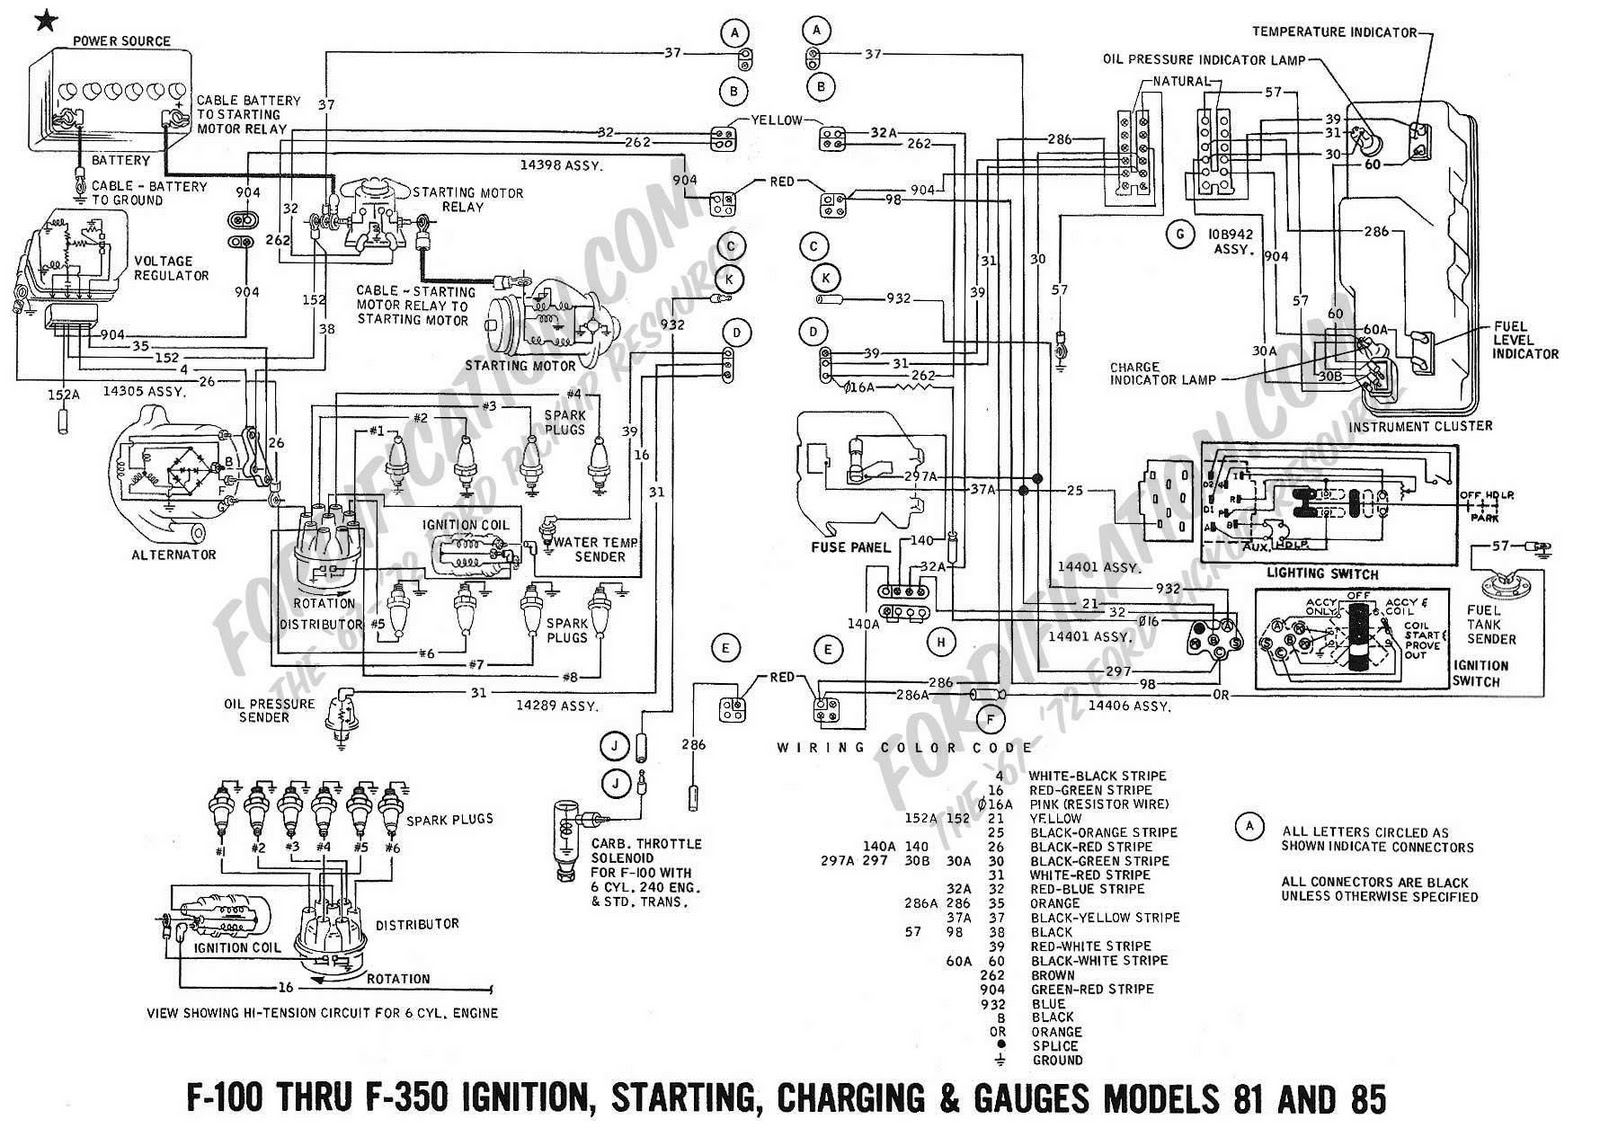 1953 Ford Turn Signal Switch Wiring Diagram Manual Guide 1949 1969 F100 F350 Ignition Starting Charging And Gauges All About 1972 2017 F550